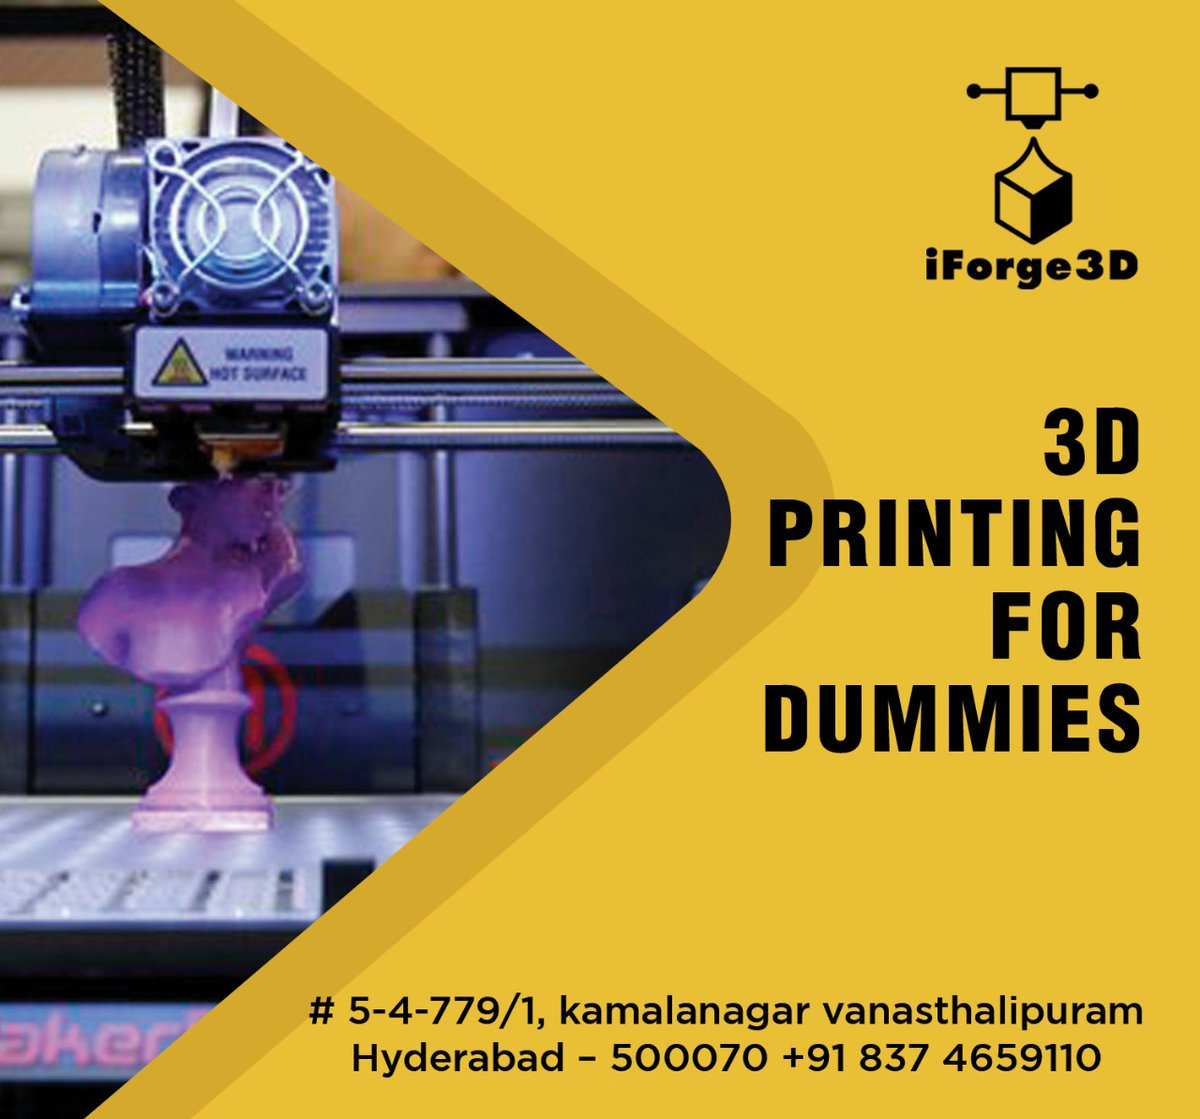 3D Printing For Dummies-iForge3D Rapid Prototyping Technologies   Vist Us-   3dprinting #3dprinter #3dprinted #3dprints #3dprinters #dprint #d #dprinter #dprint #dprinted #design #dmodel #print #diy #3ddesigns